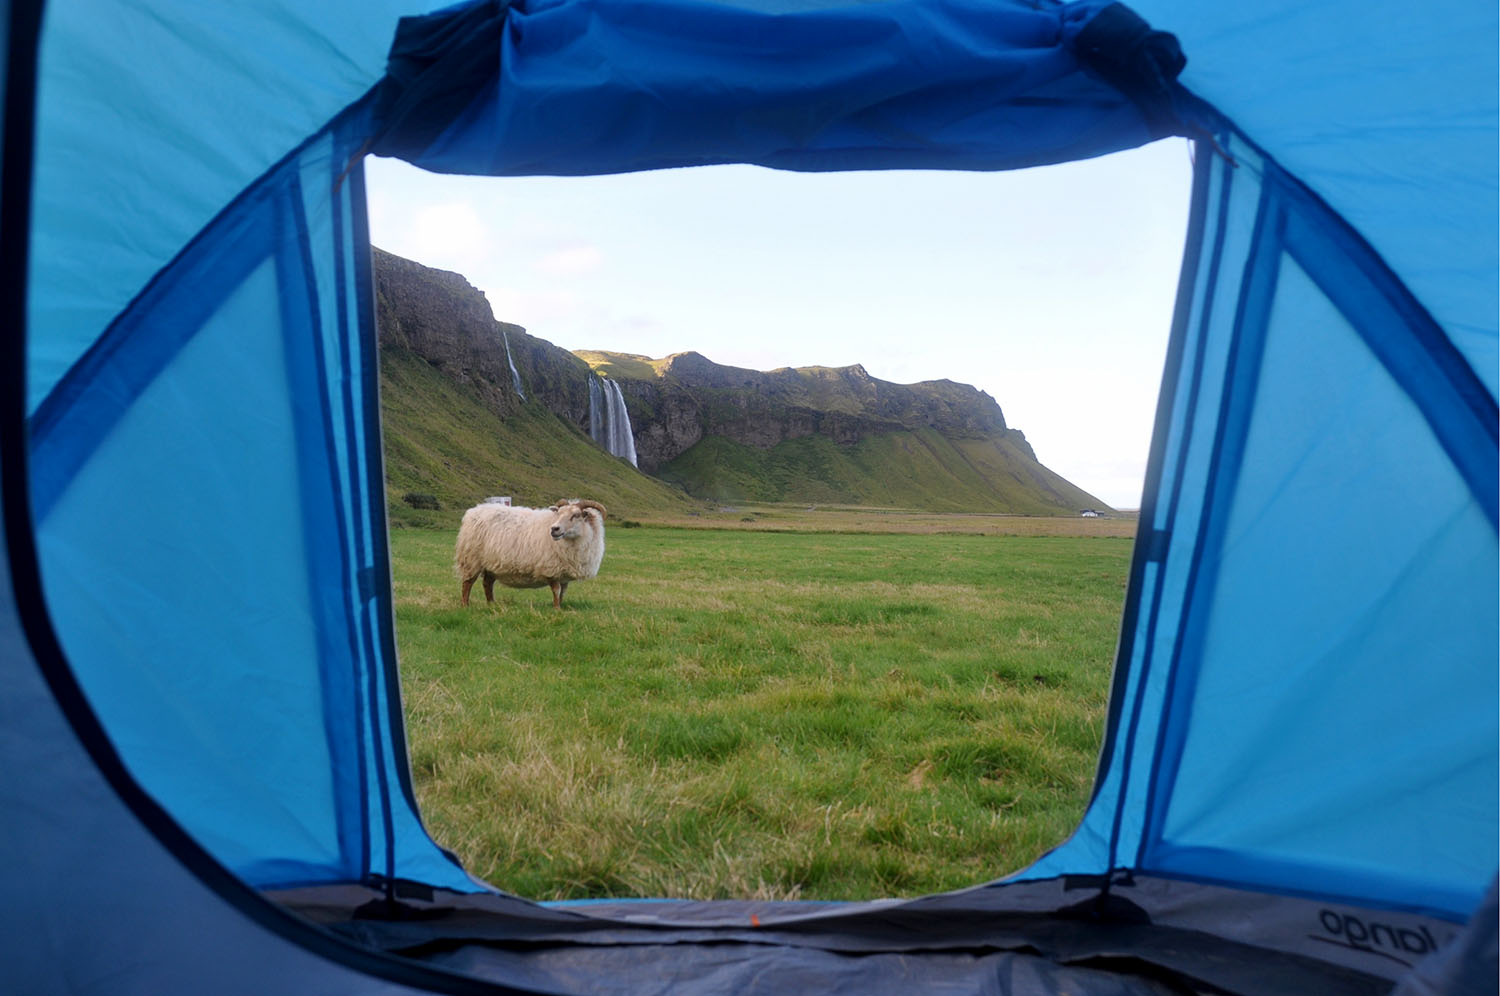 Tent Sheep Iceland Camping Equipment